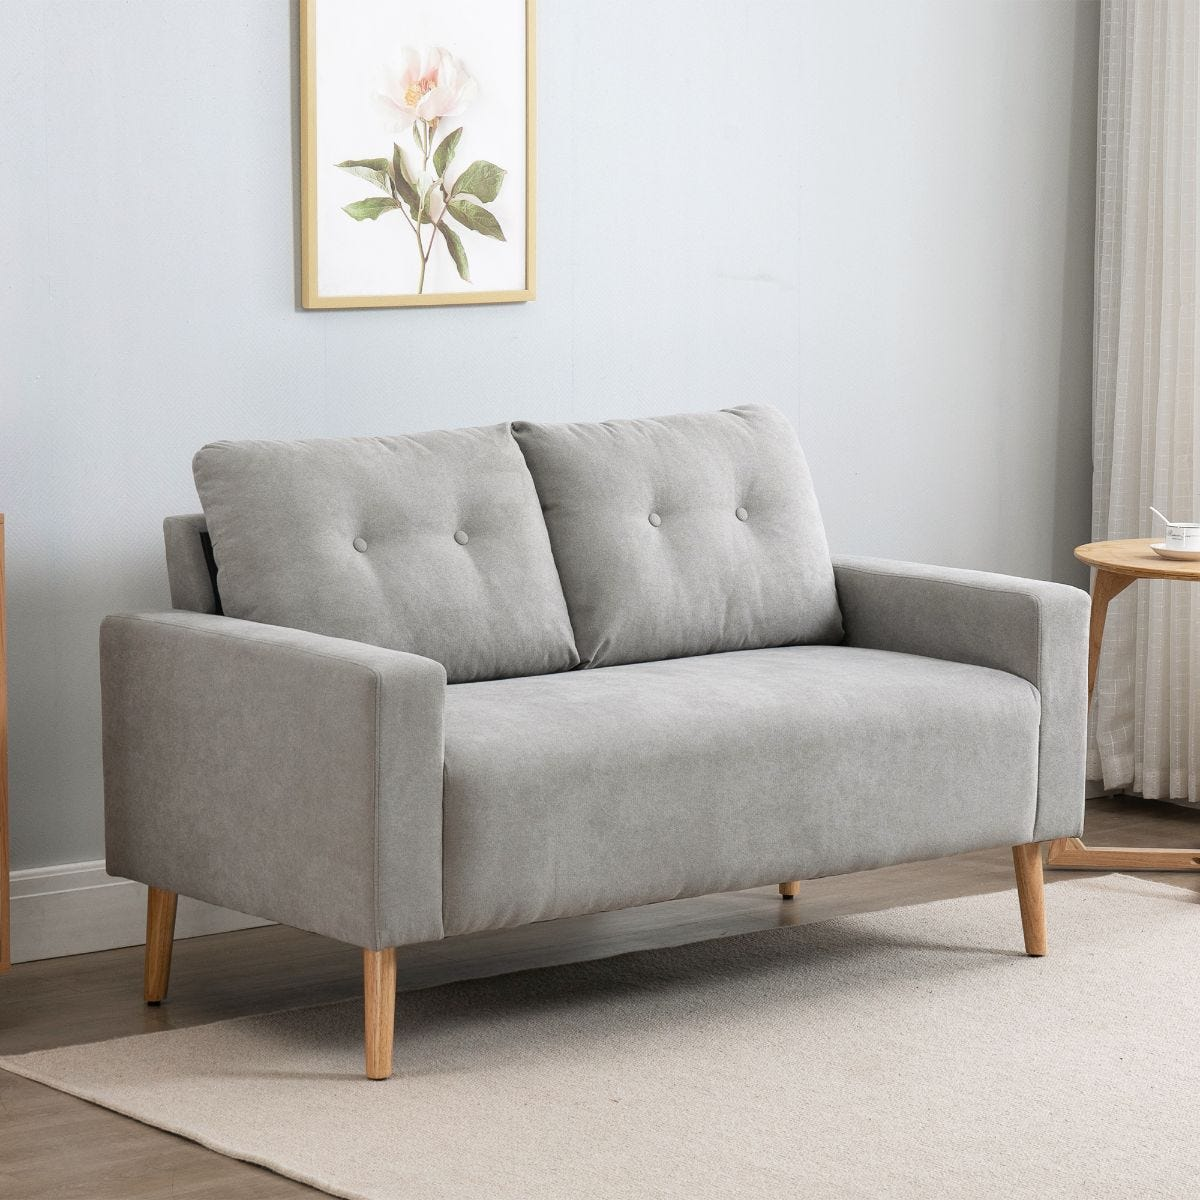 Two Seater Compact Fabric Sofa Loveseat Grey